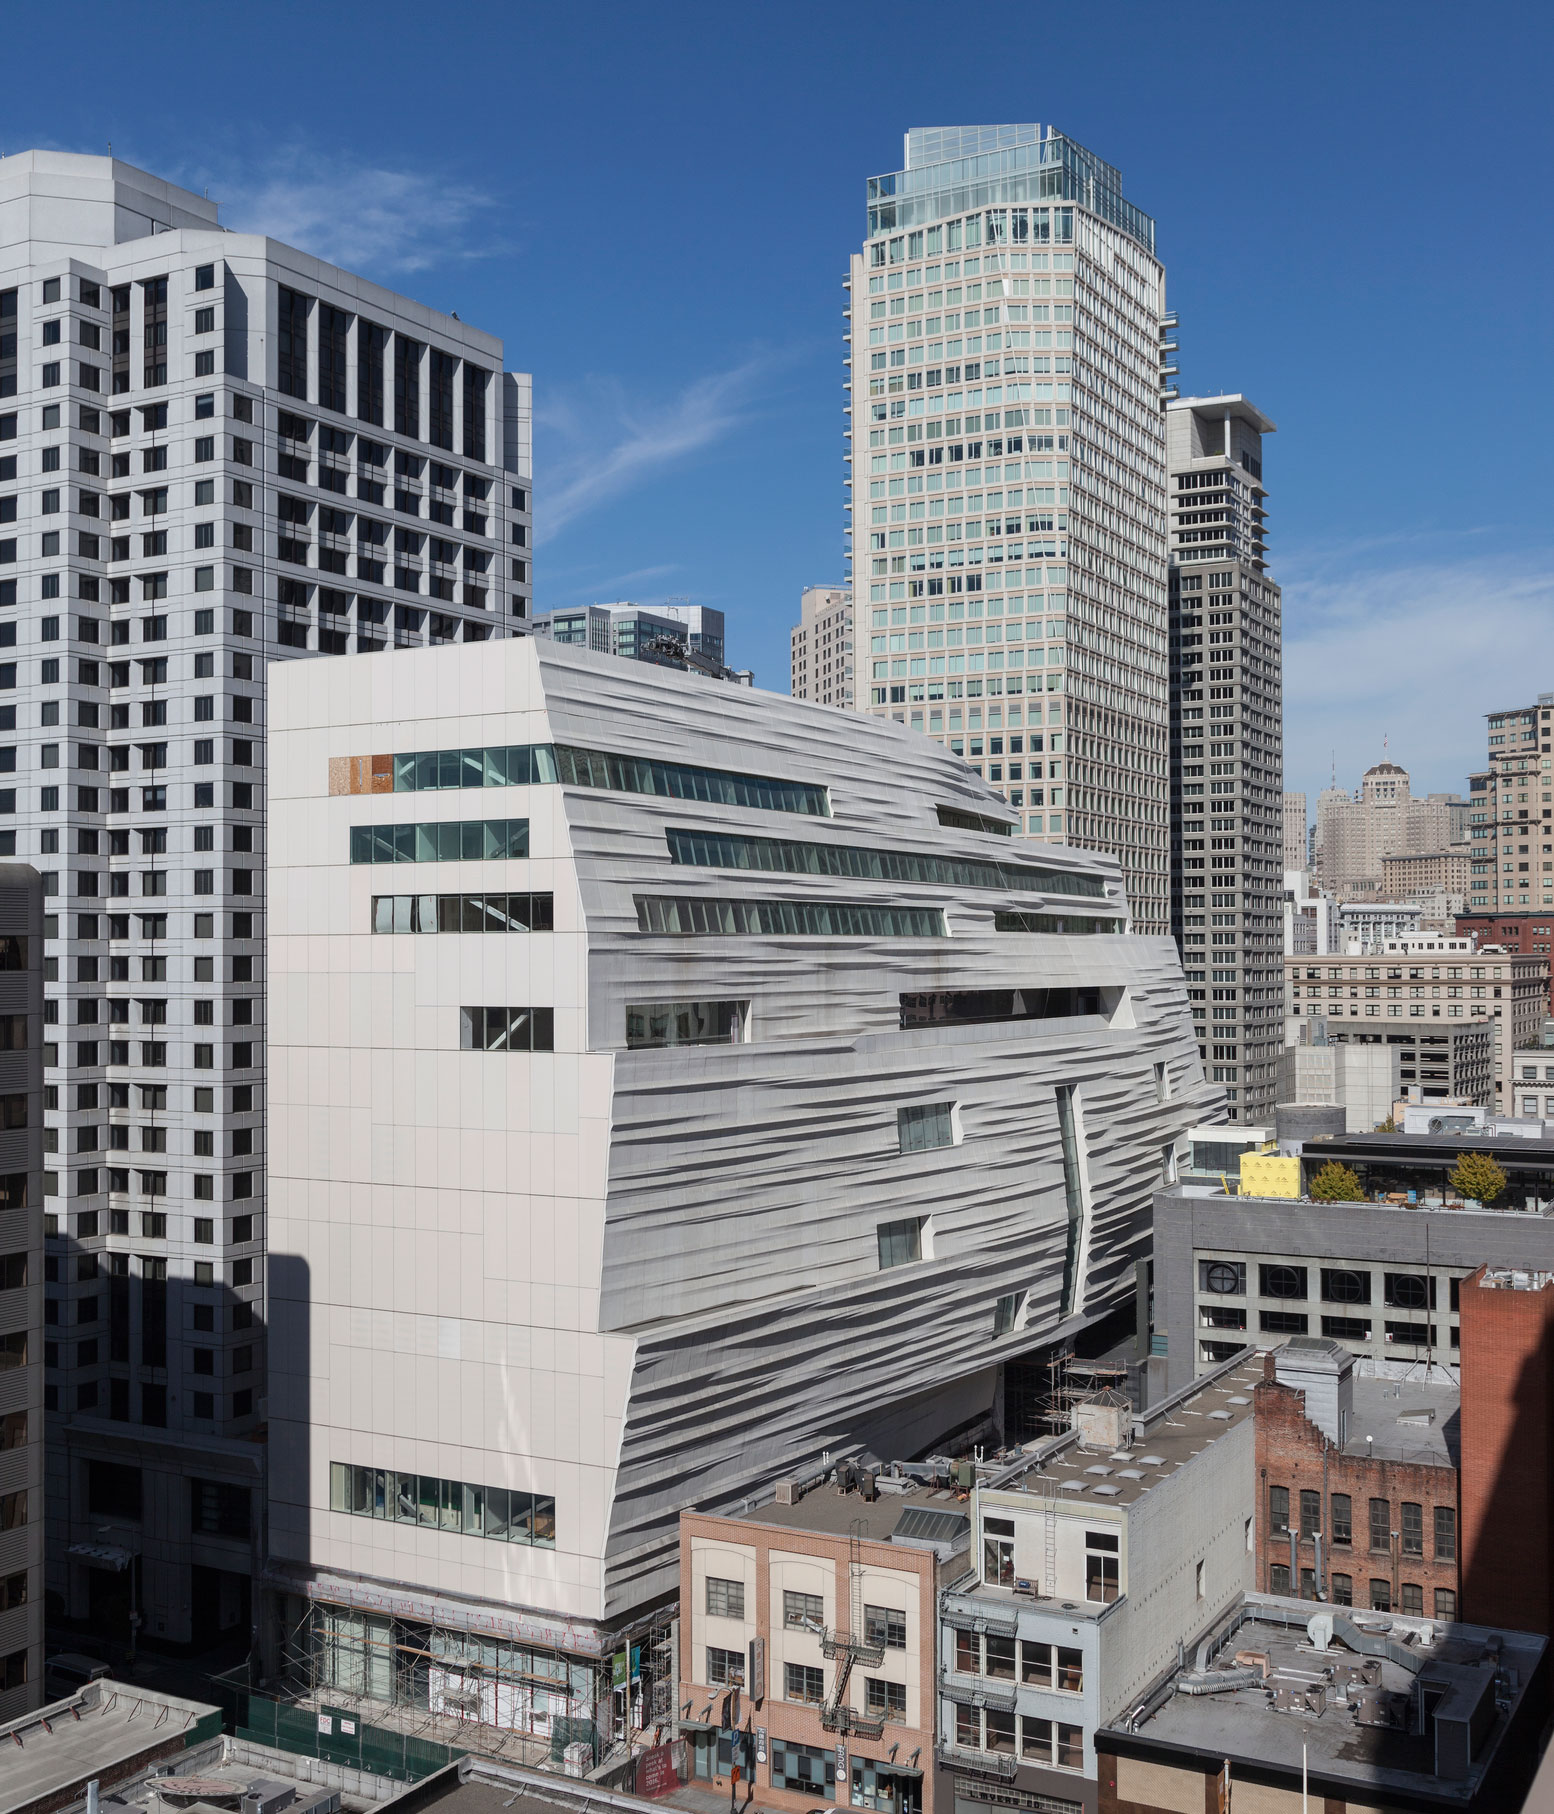 The SFMOMA expansion